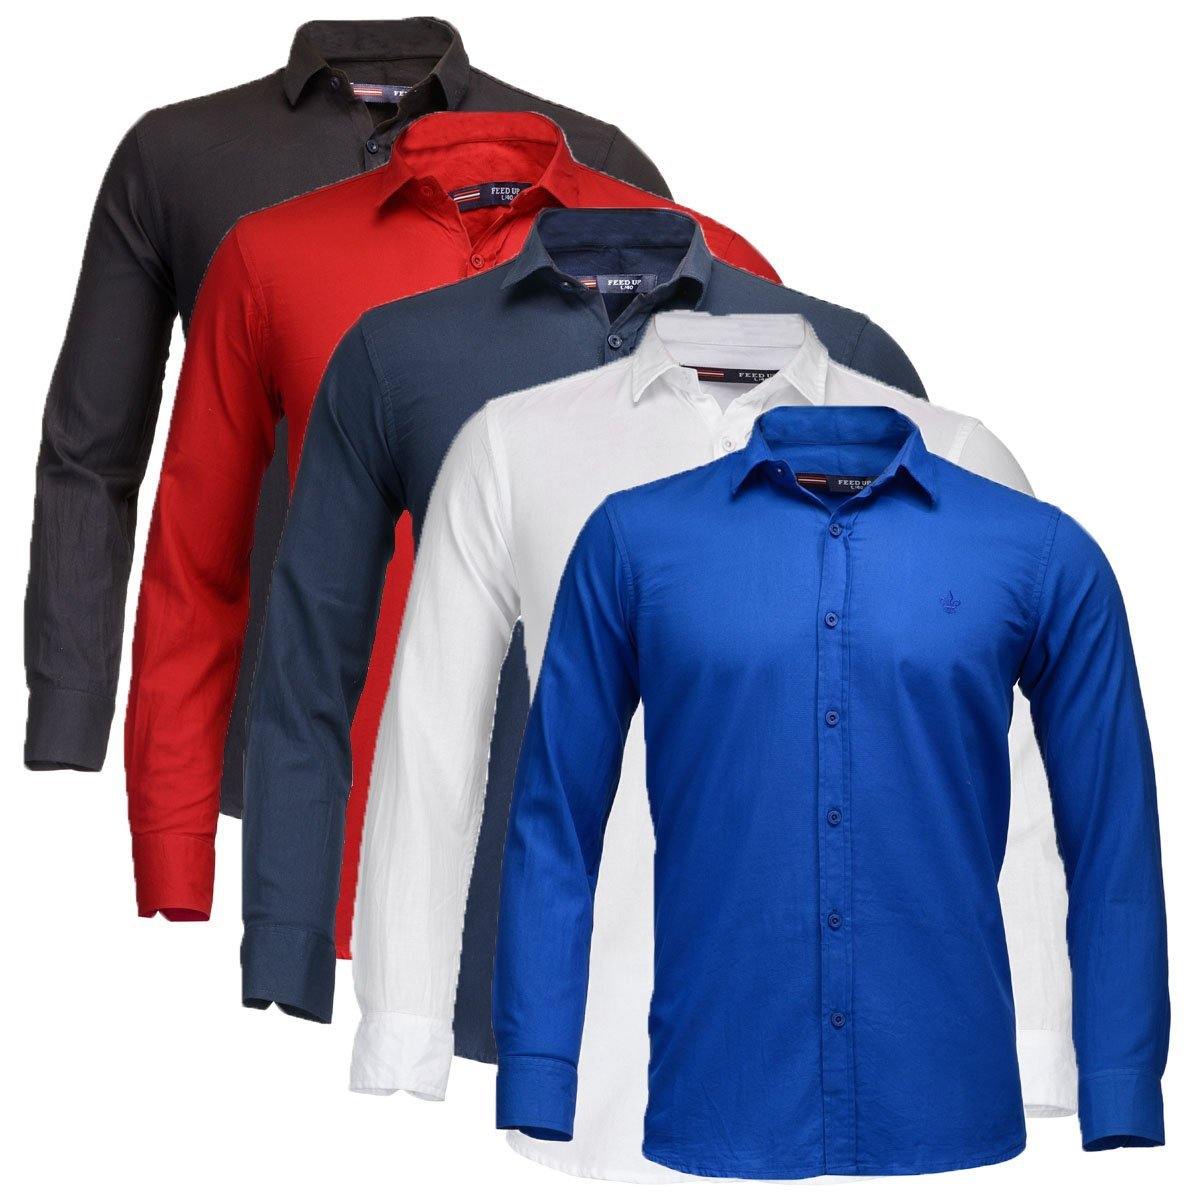 84bc9efd9 Men's Shirt with Splash Printed with long sleeves Combo of 3 ...